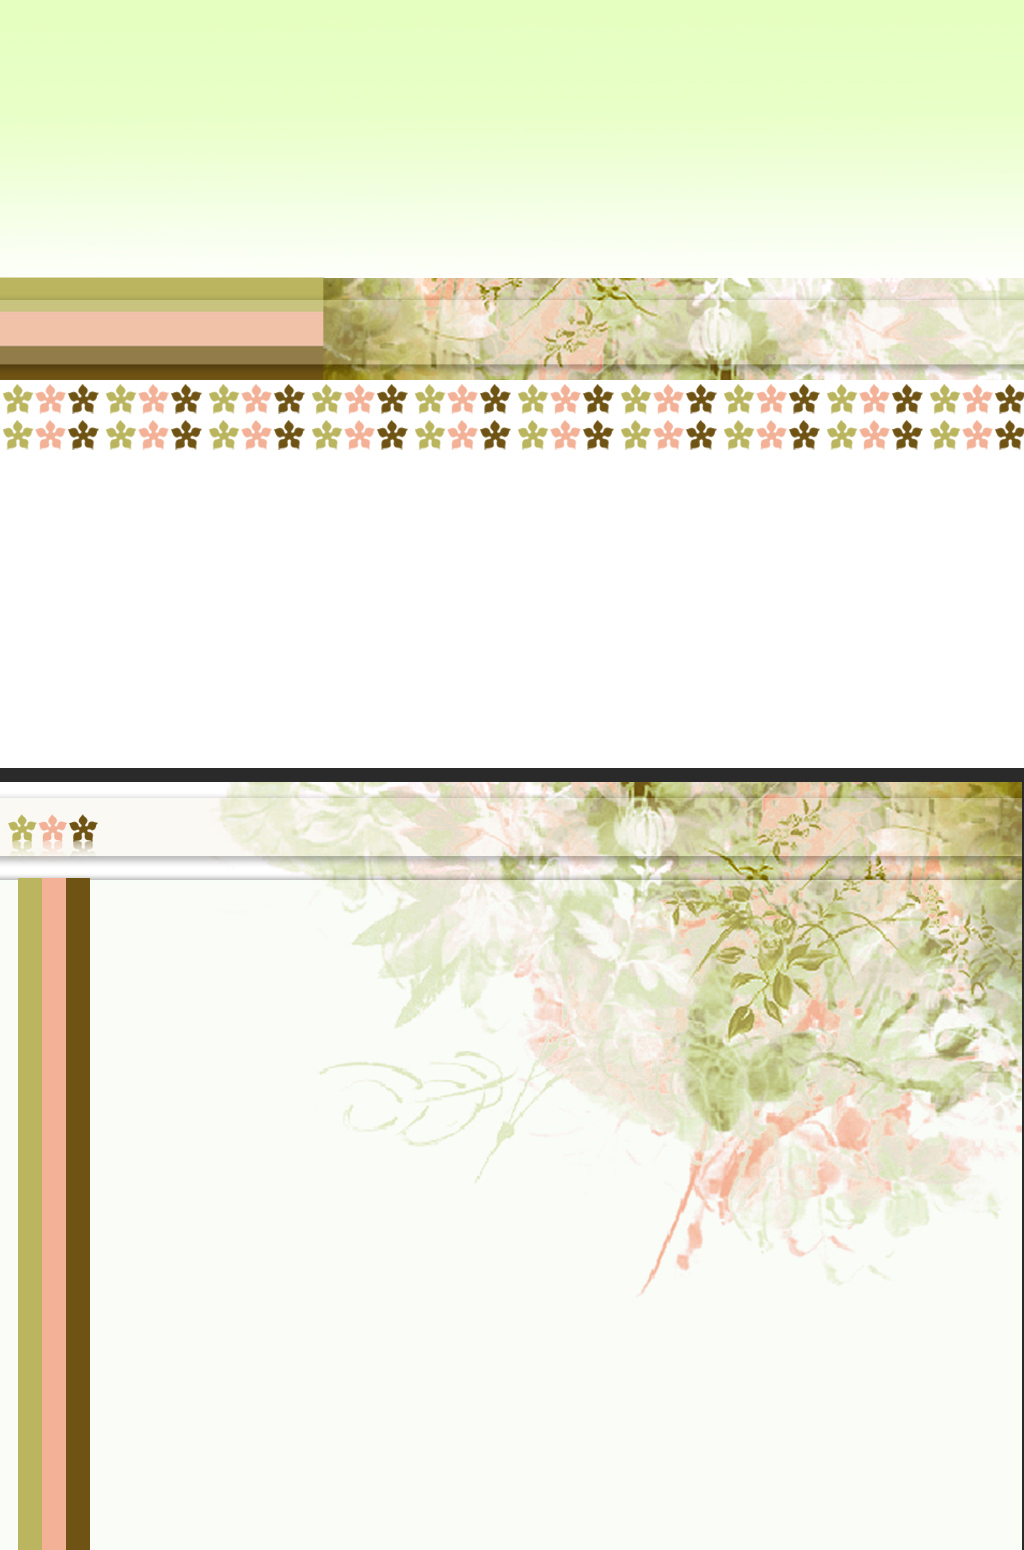 Elegant powerpoint template by tempting resources on deviantart more from deviantart powerpoint templates toneelgroepblik Gallery